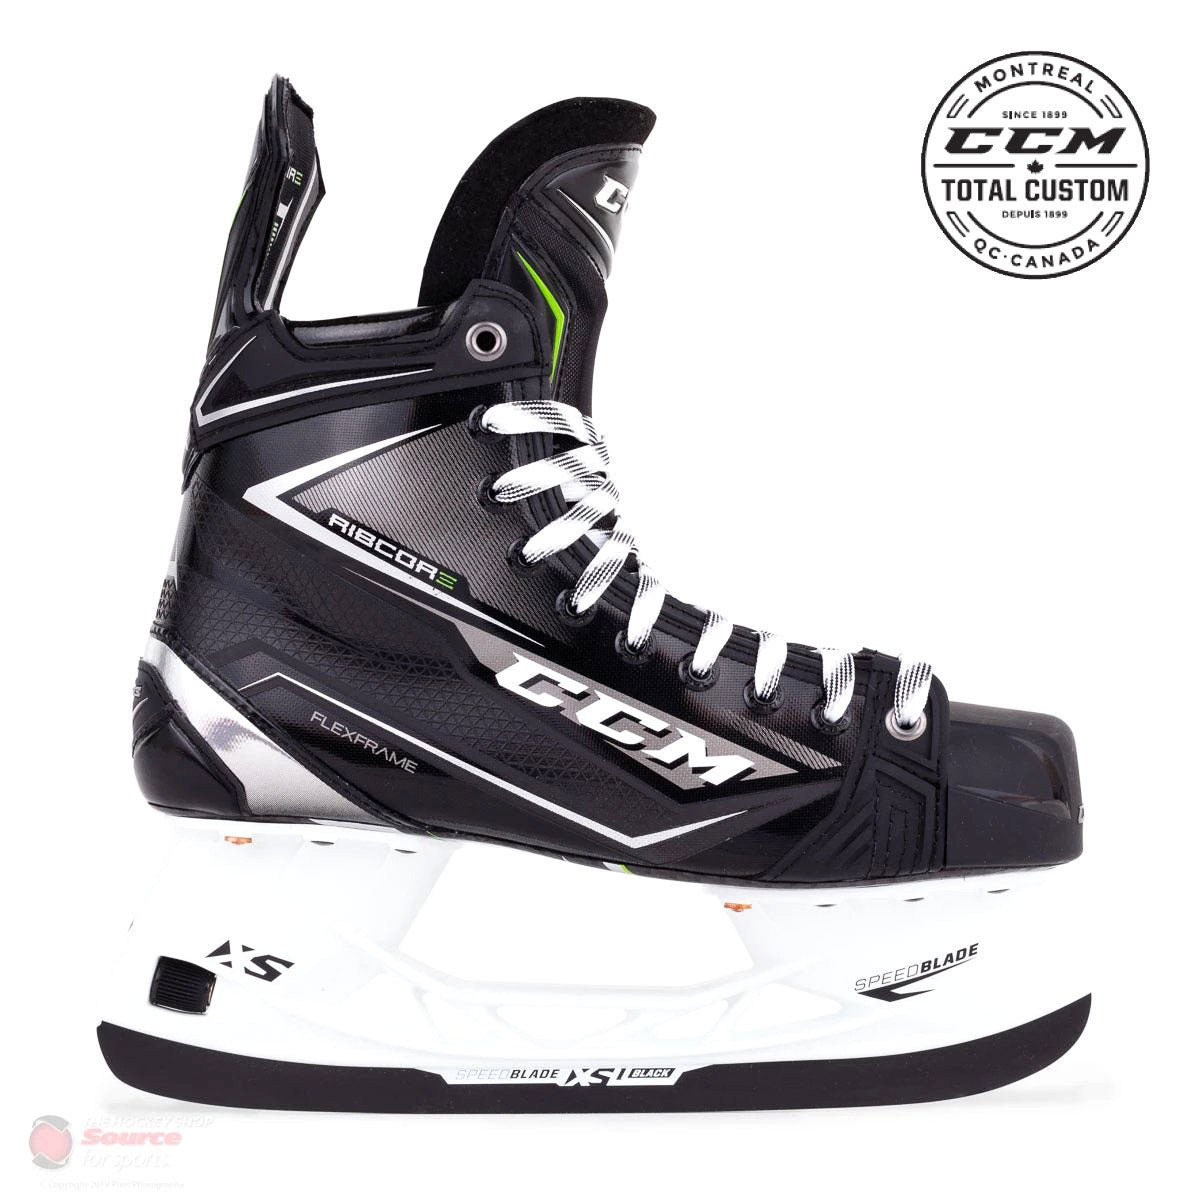 CCM RIBCOR 80K Senior Custom Hockey Skates